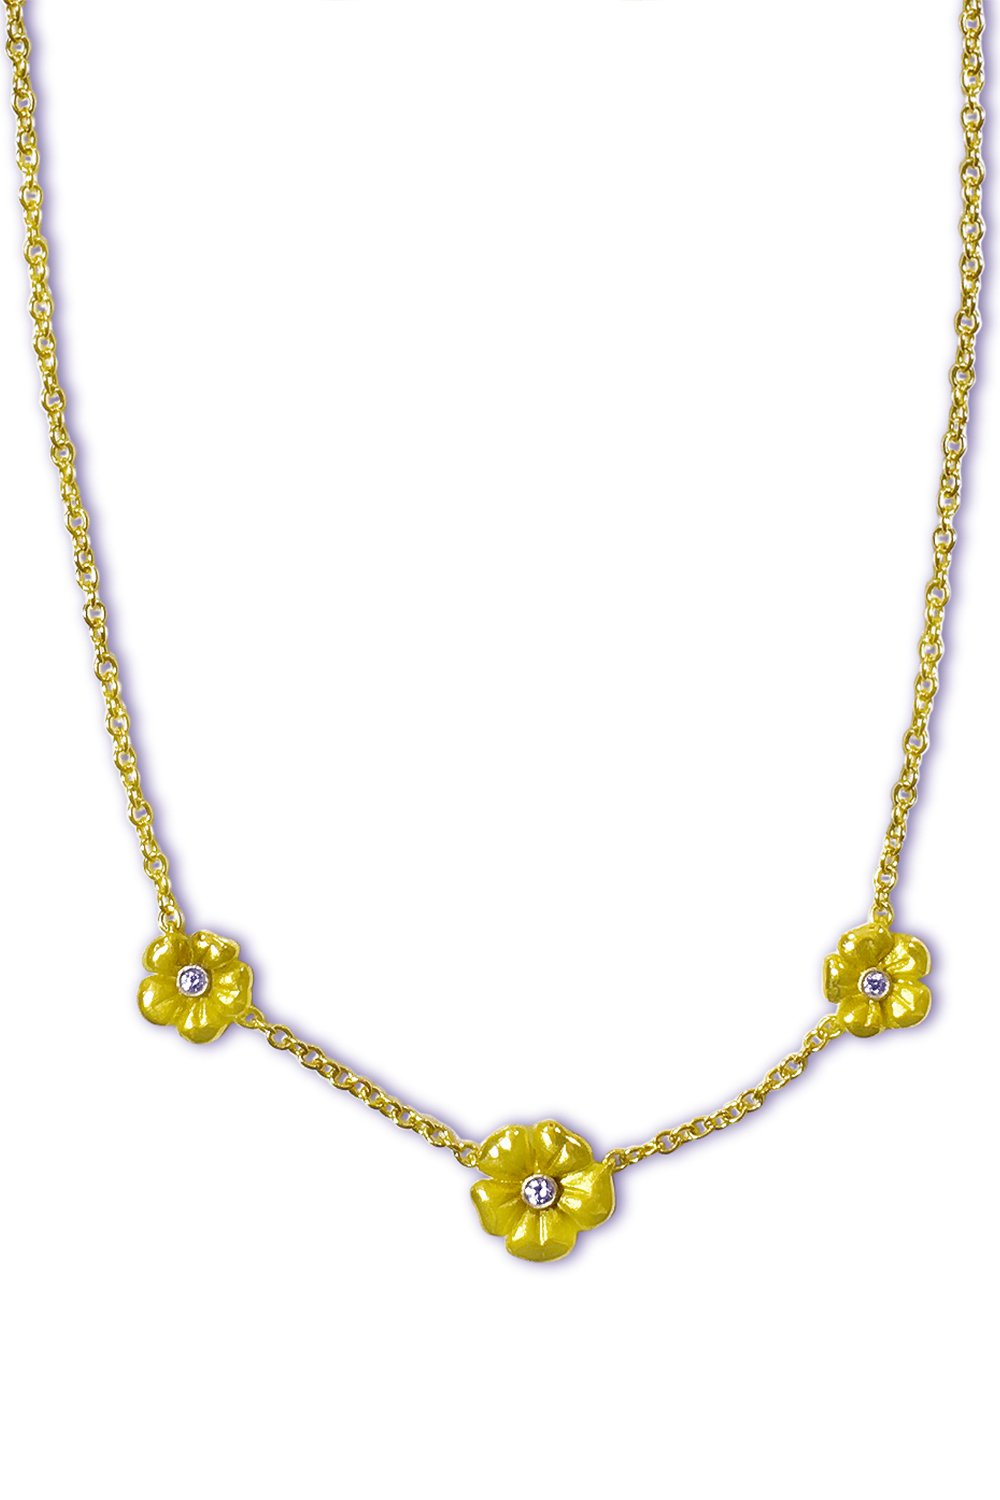 3 Blossom Flower Necklace